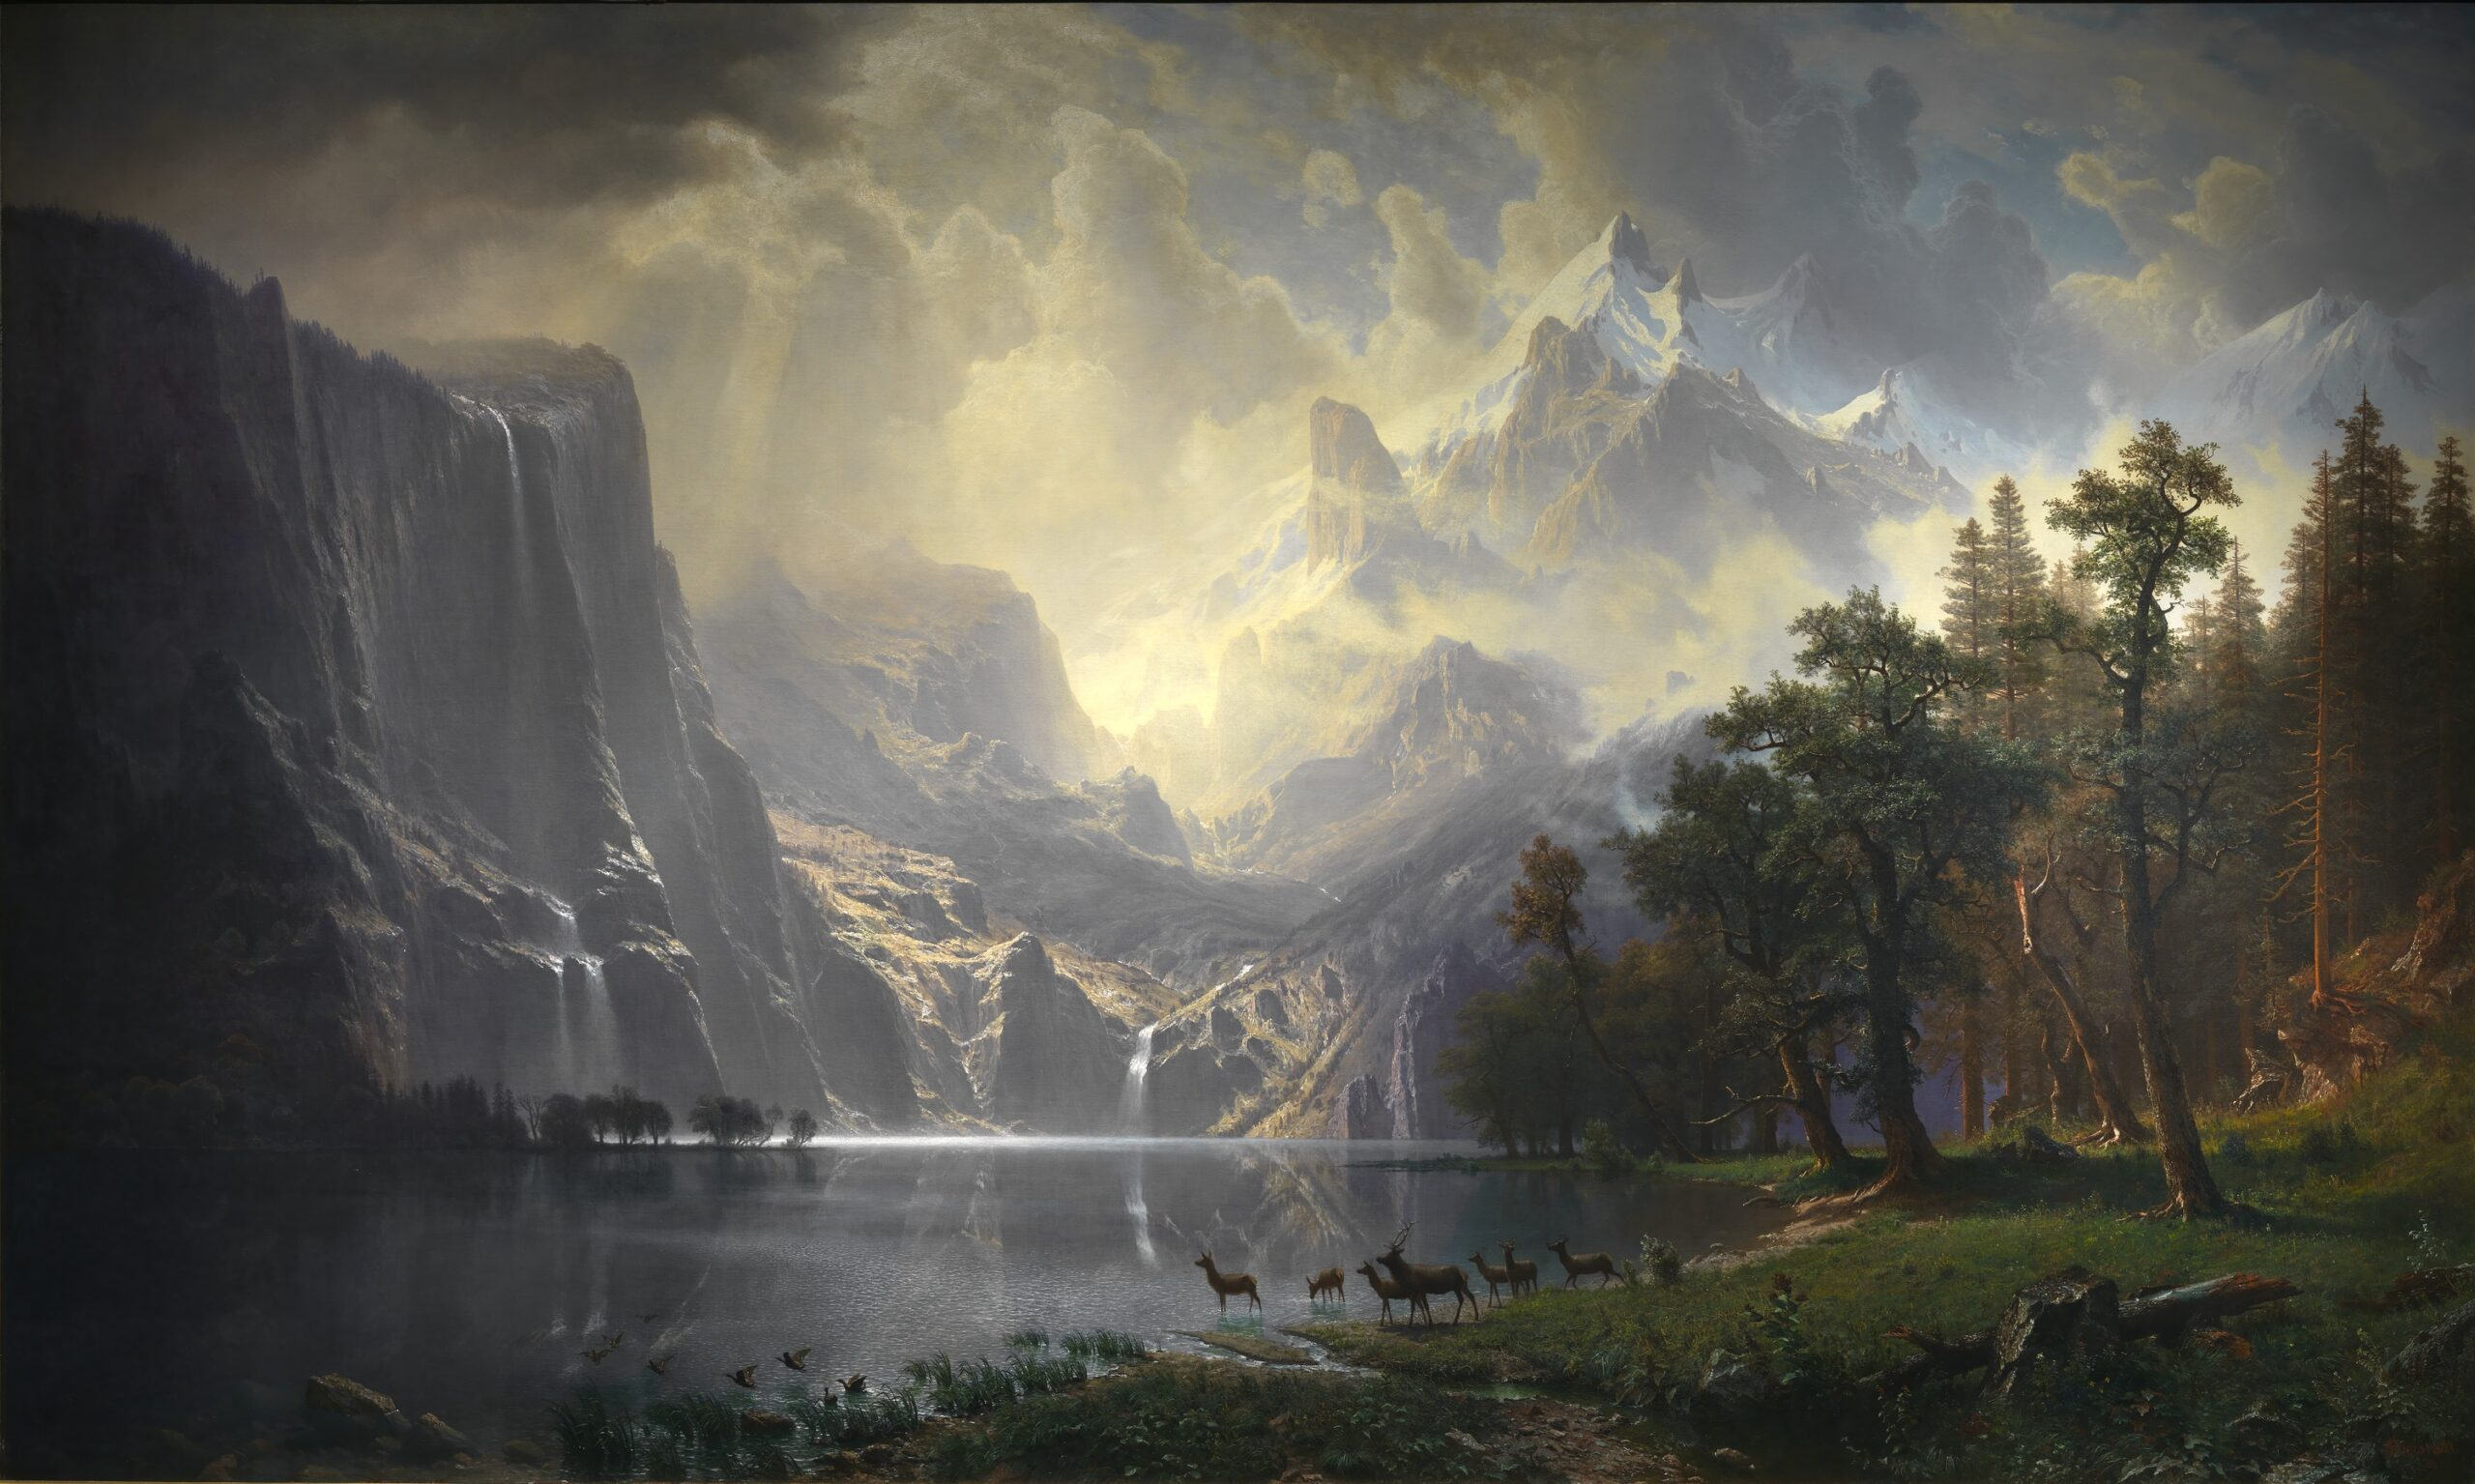 Photo by Albert Bierstadt, Among the Sierra Nevadas, CA from Smithsonian Institute CCO